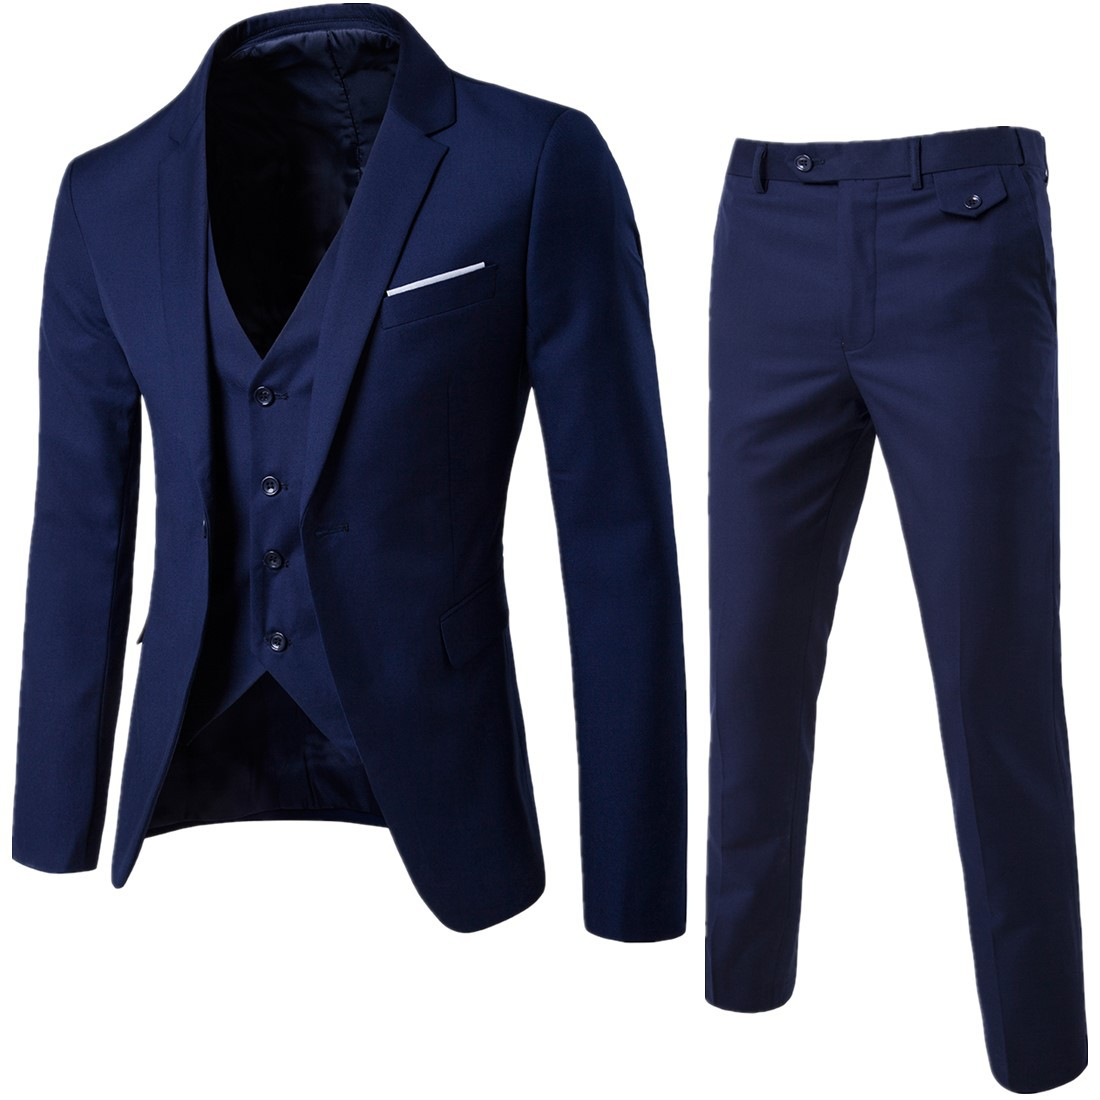 Suit Young Men's Korean-style Slim Fit Double Breasted Suit Business Formal Wear Groom Best Man Tuxedo Three-piece Suit